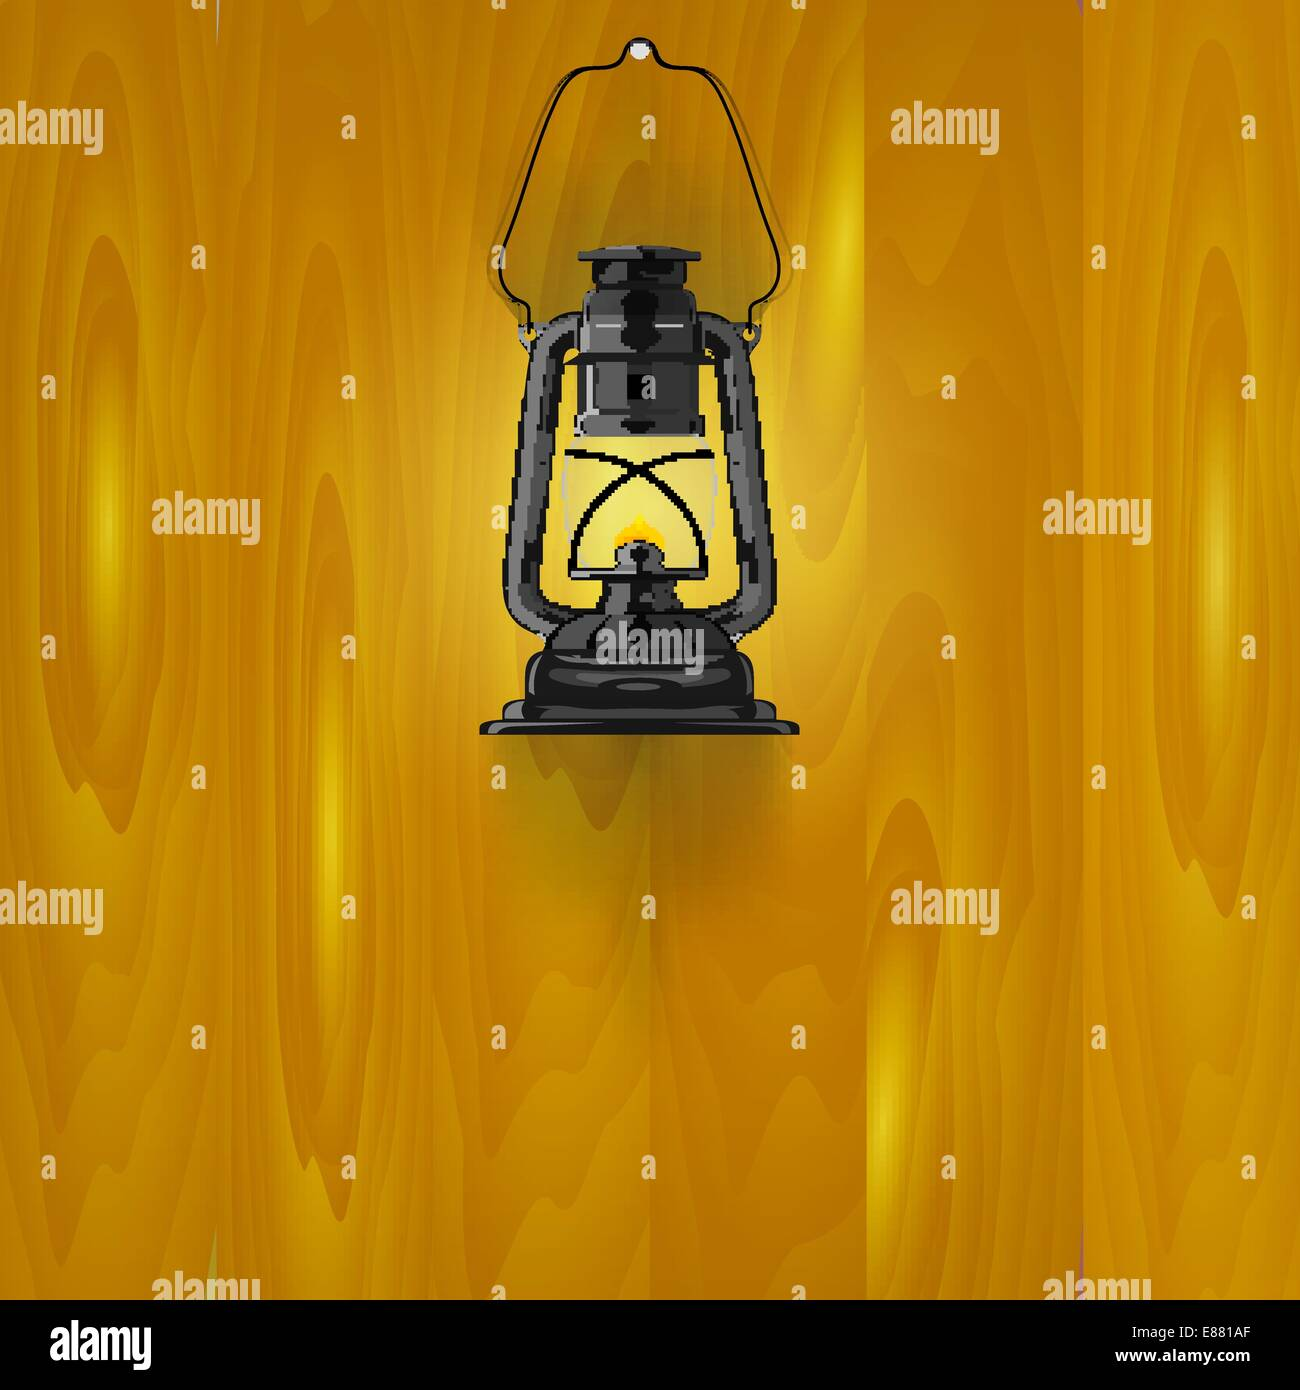 Illustration of an old lamp on a wooden wall - Stock Vector